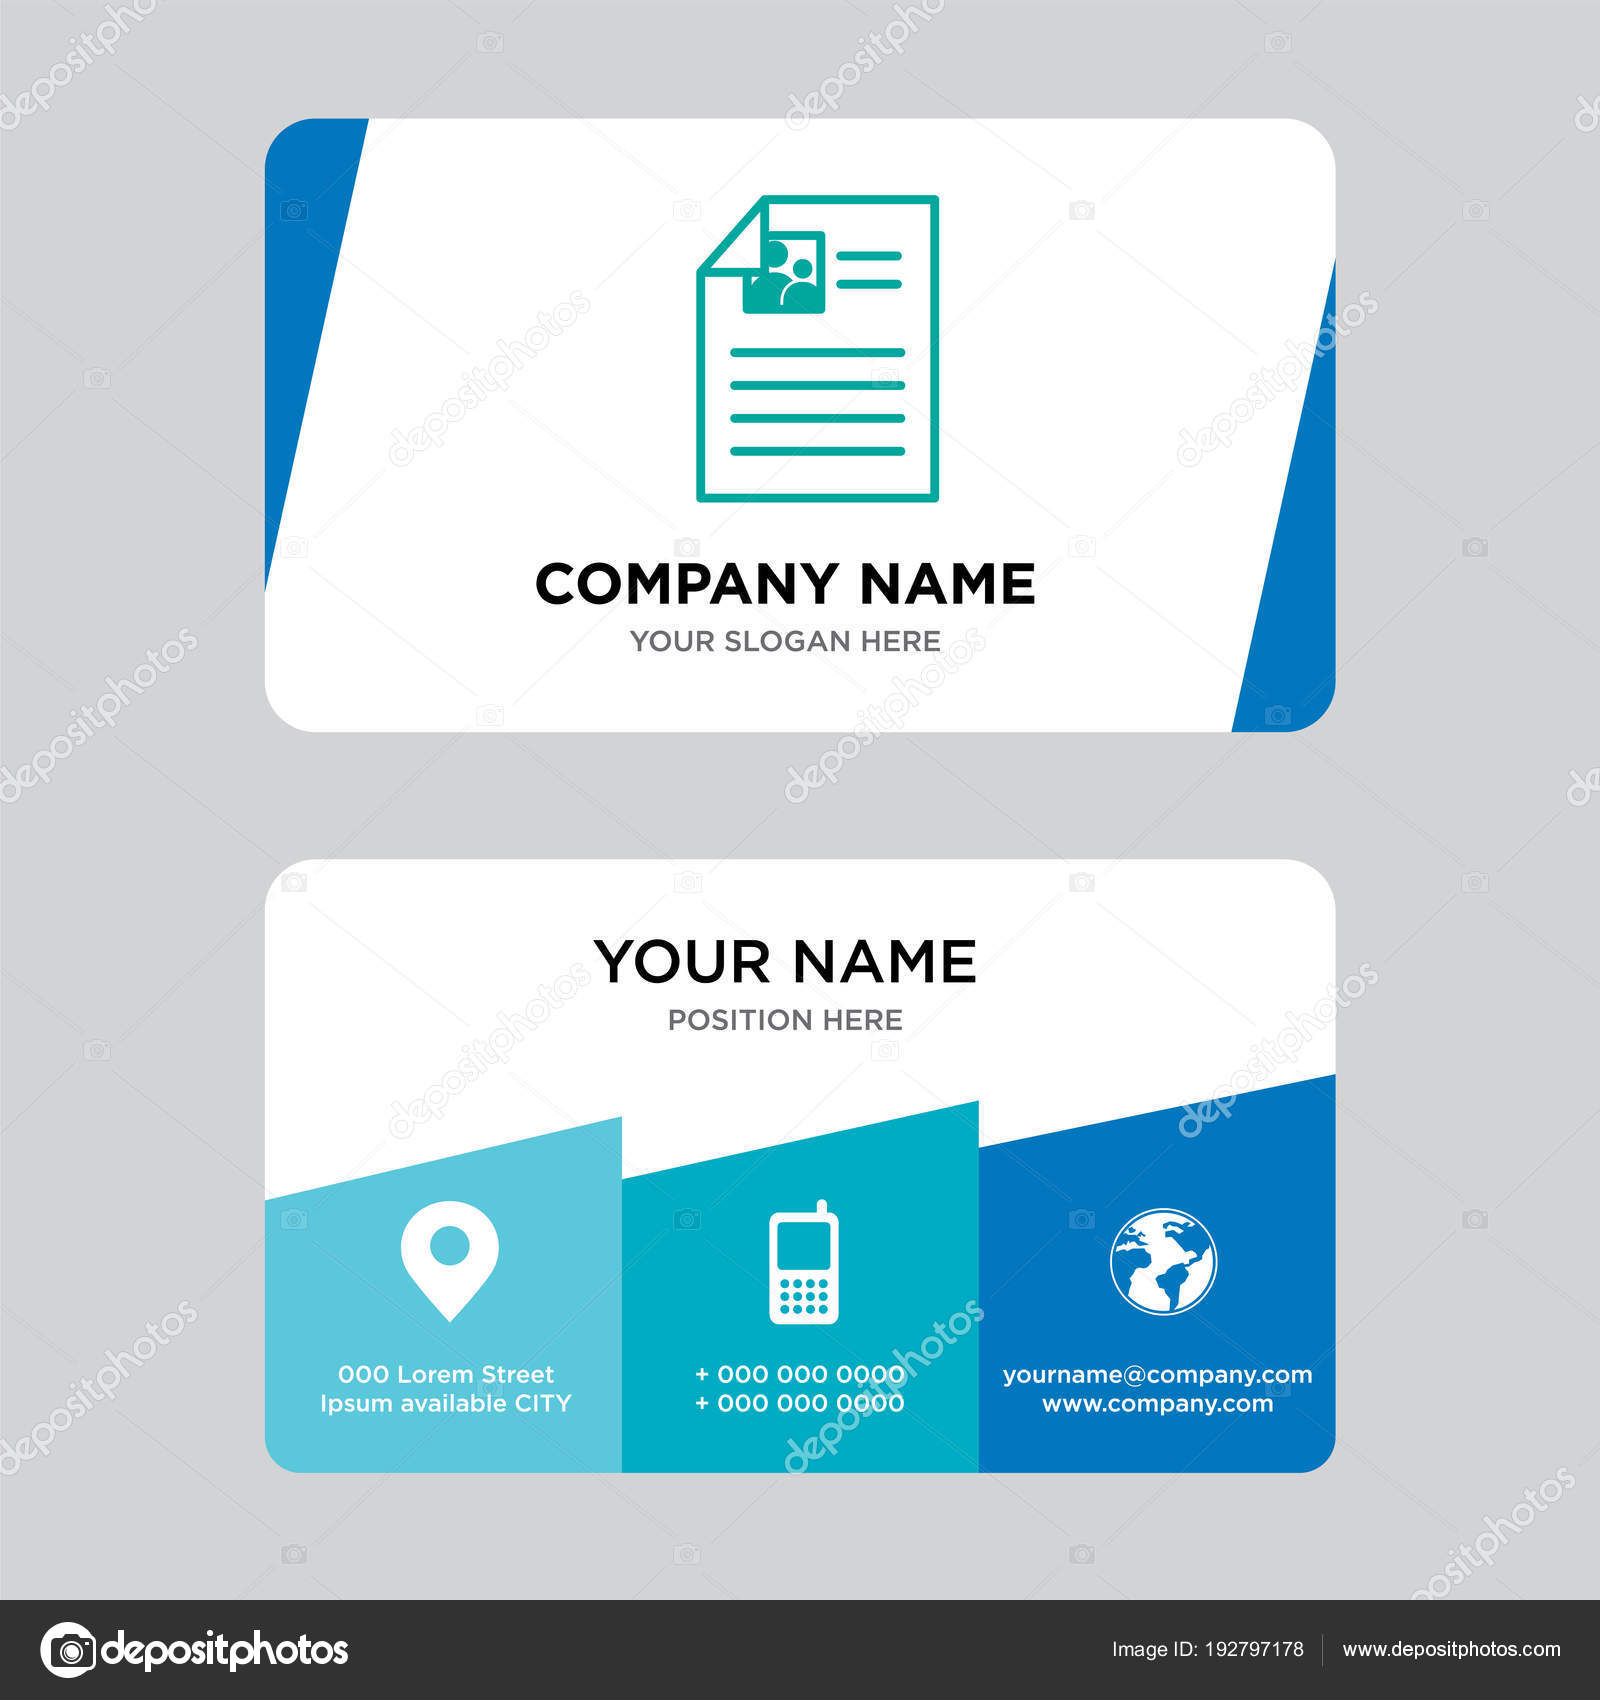 Business card design template stock vector urfandadashov 192797178 business card design template visiting for your company modern creative and clean identity card vector illustration vector by urfandadashov reheart Image collections